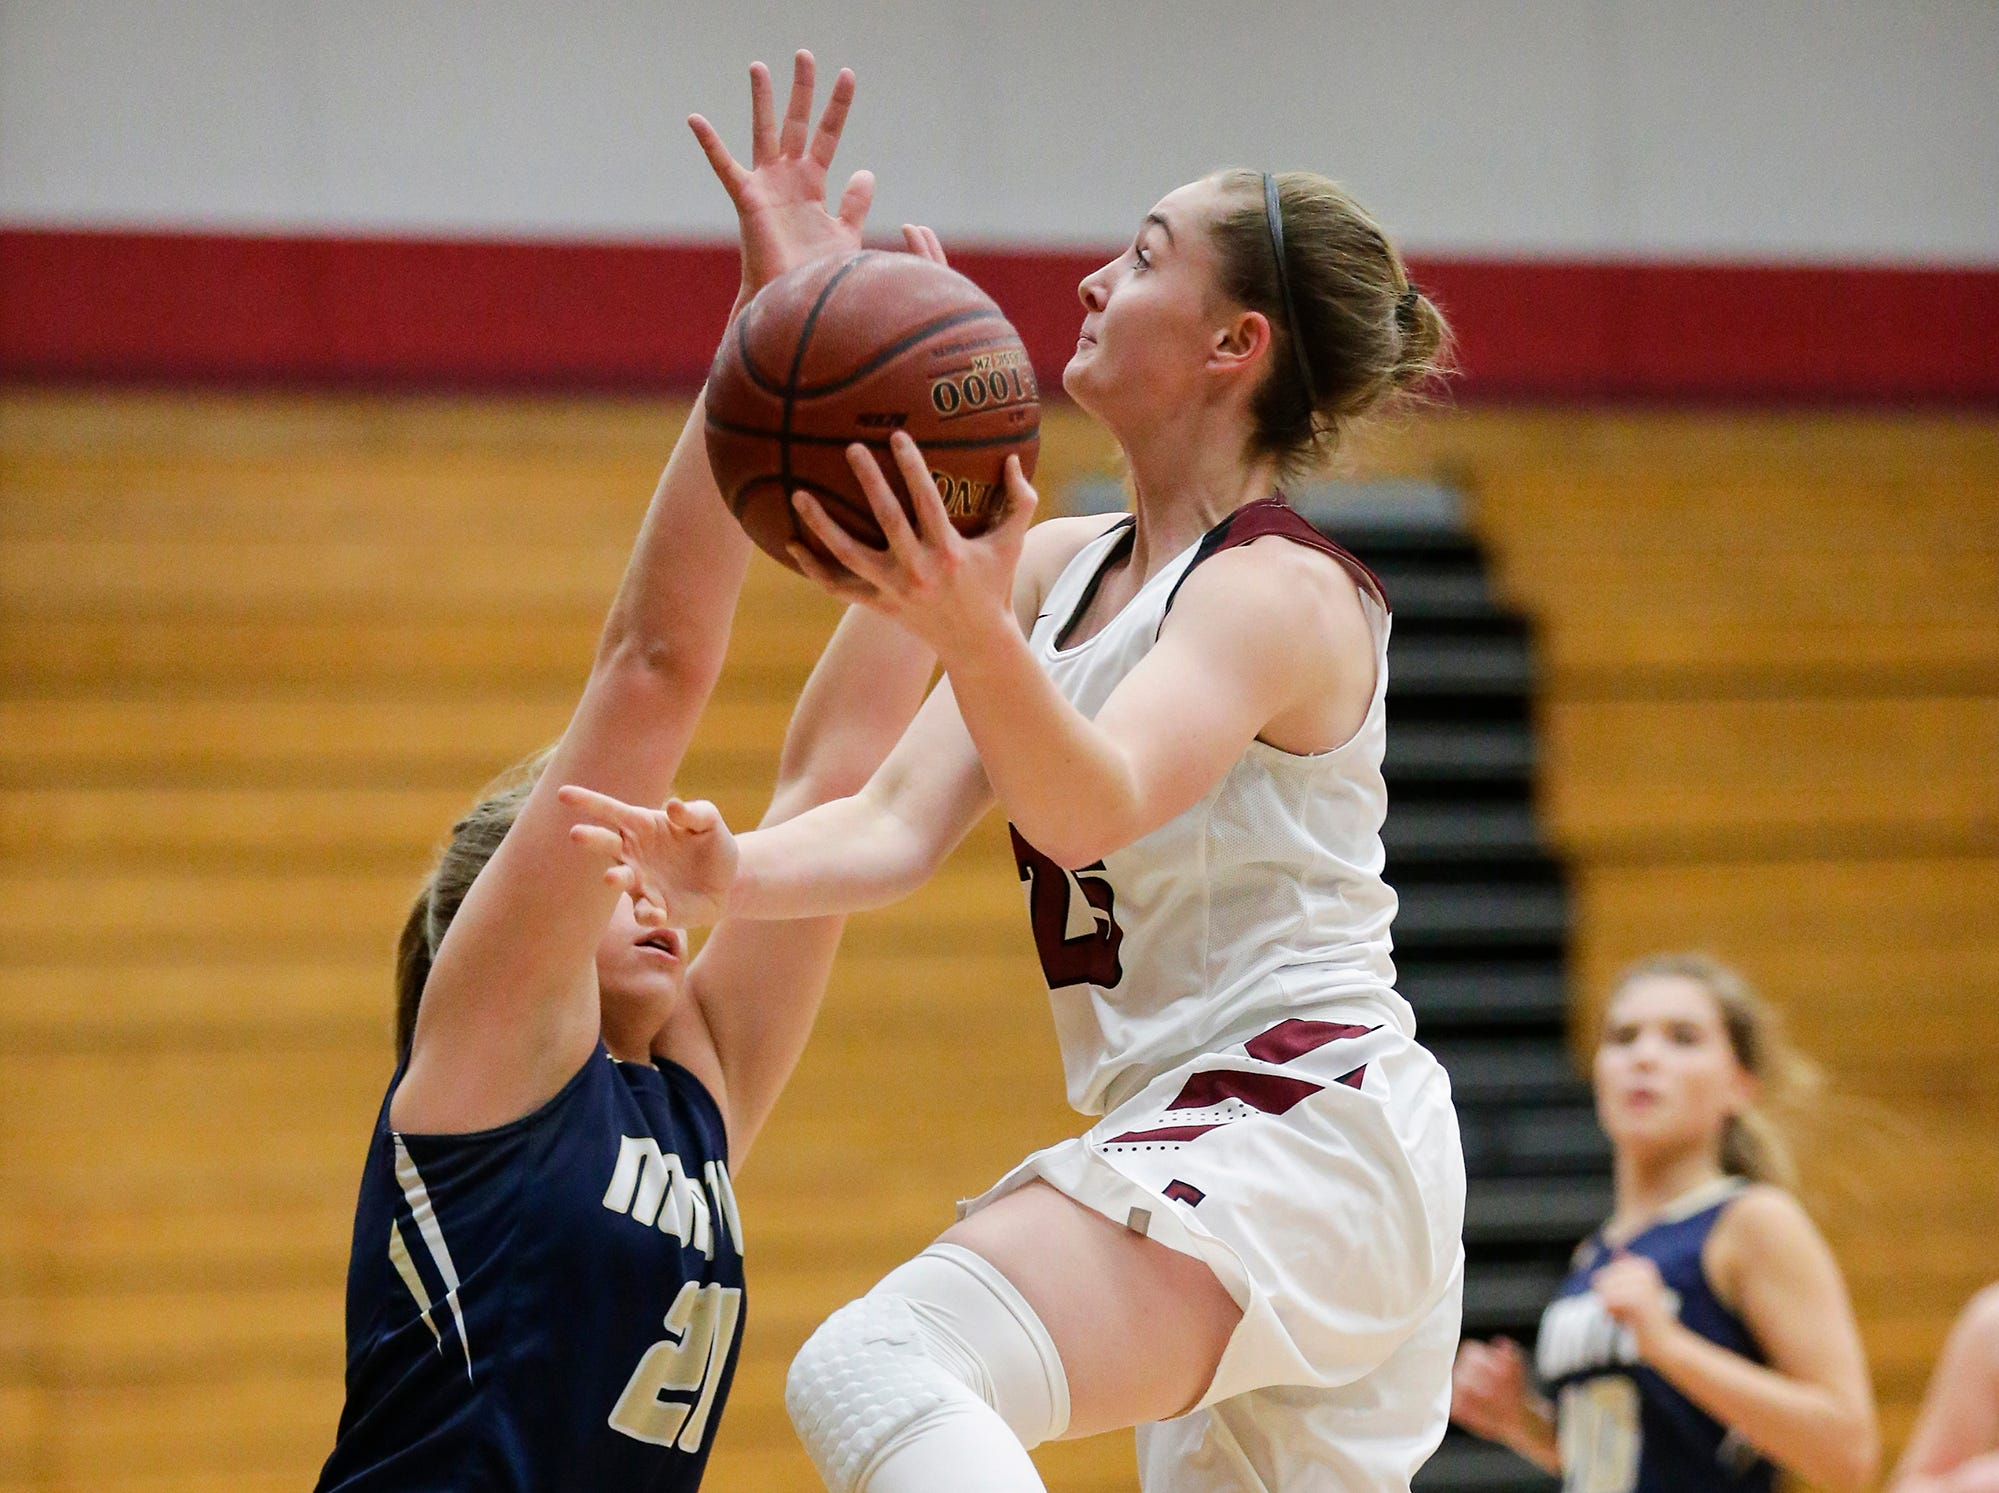 Fond du Lac High School girls basketball's Joslyn Herbeck goes up for a basket against Appleton North High School's Lilli Van Handel during their game Tuesday, December 4, 2018 in Fond du Lac, Wisconsin. Doug Raflik/USA TODAY NETWORK-Wisconsin